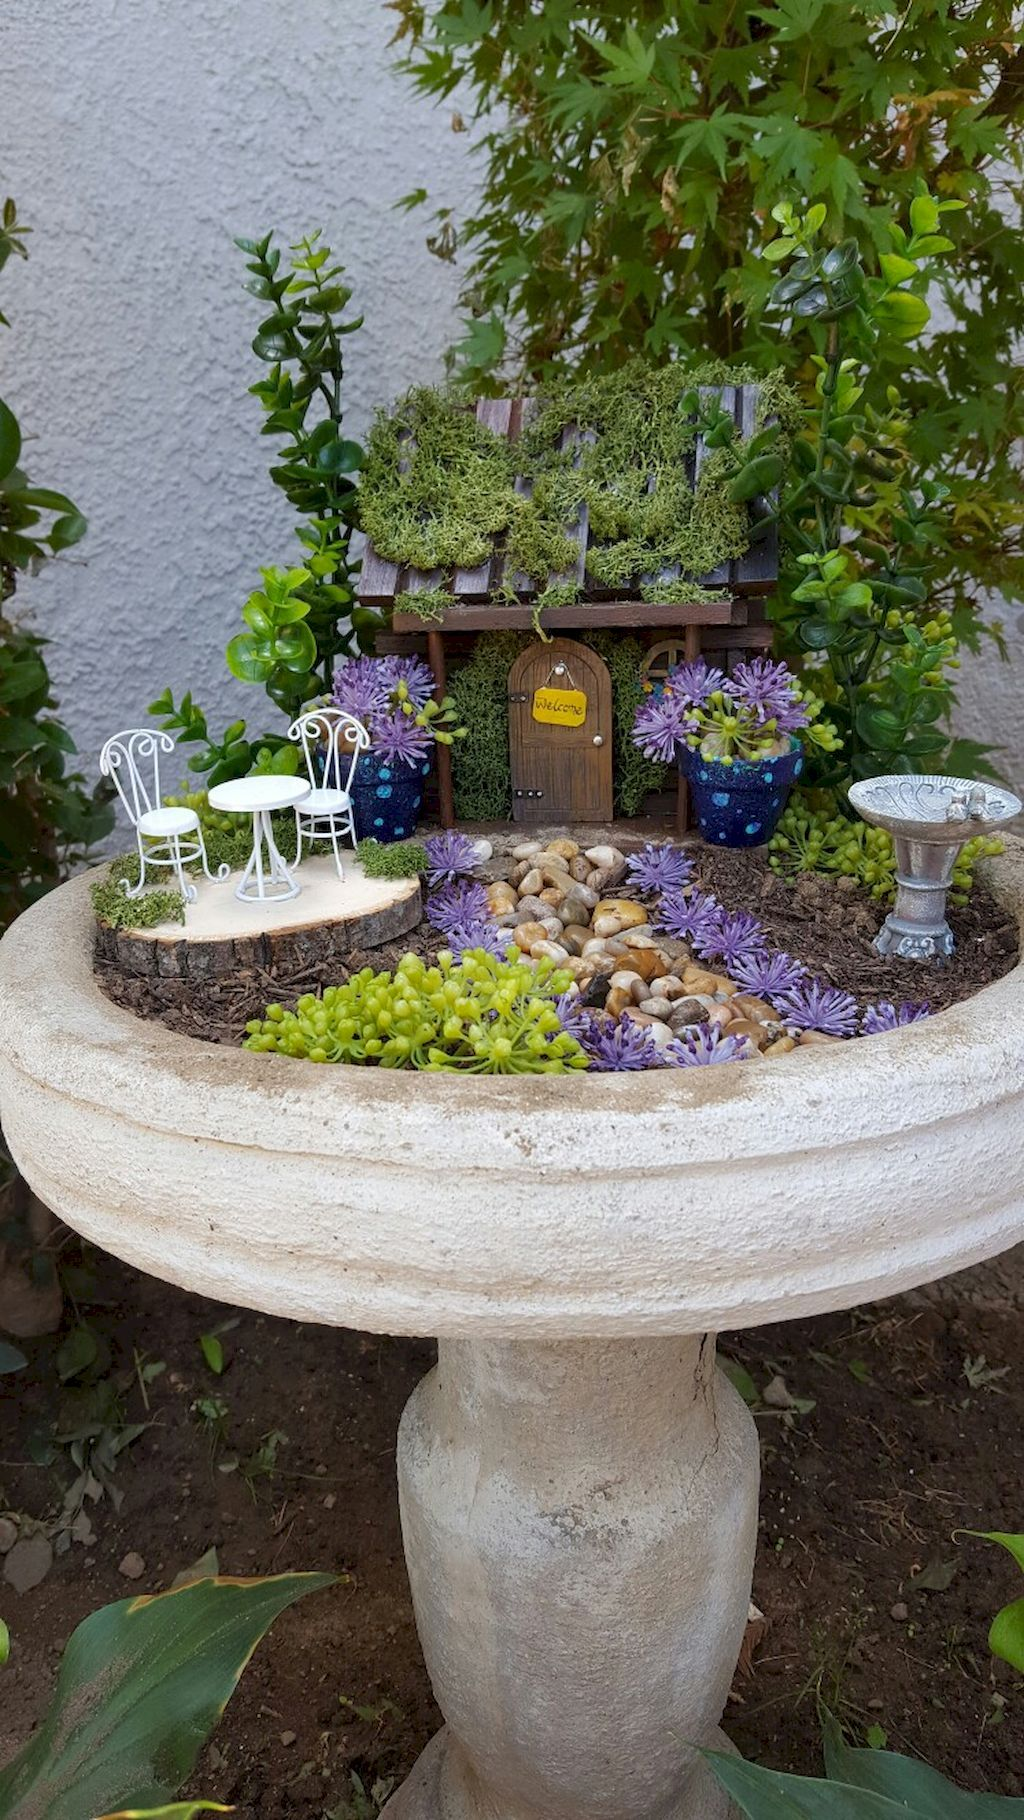 120 amazing backyard fairy garden ideas on a budget